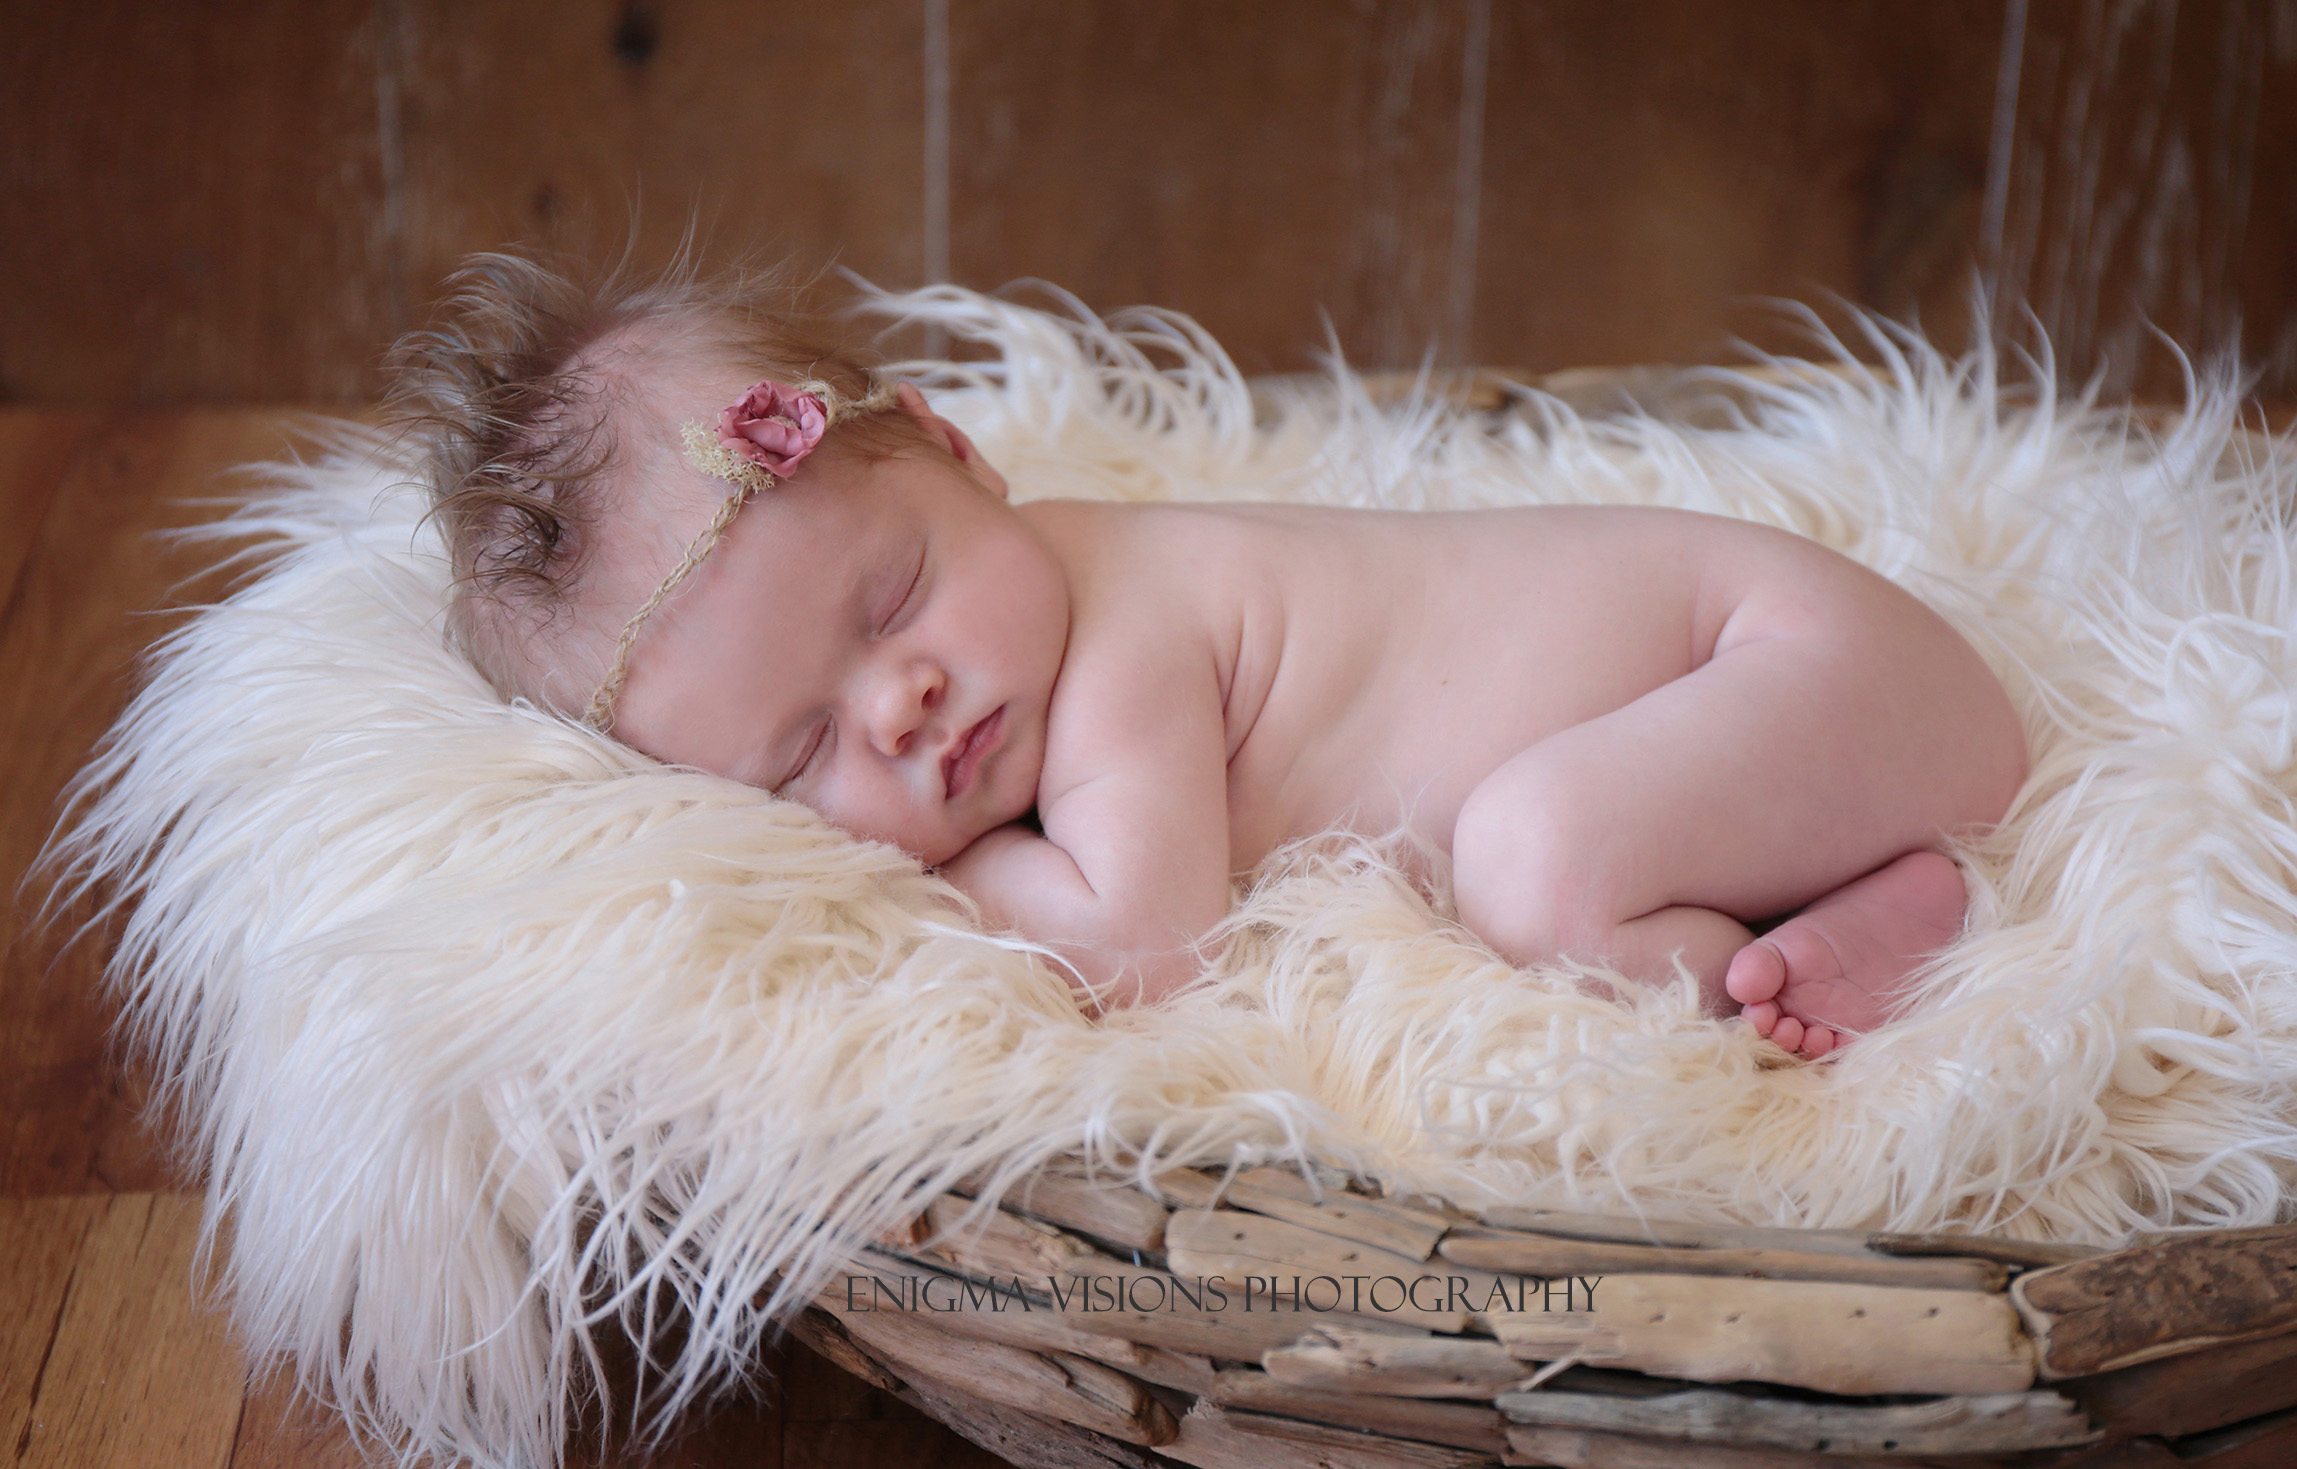 enigma_visions_photography_newborn (8).jpg